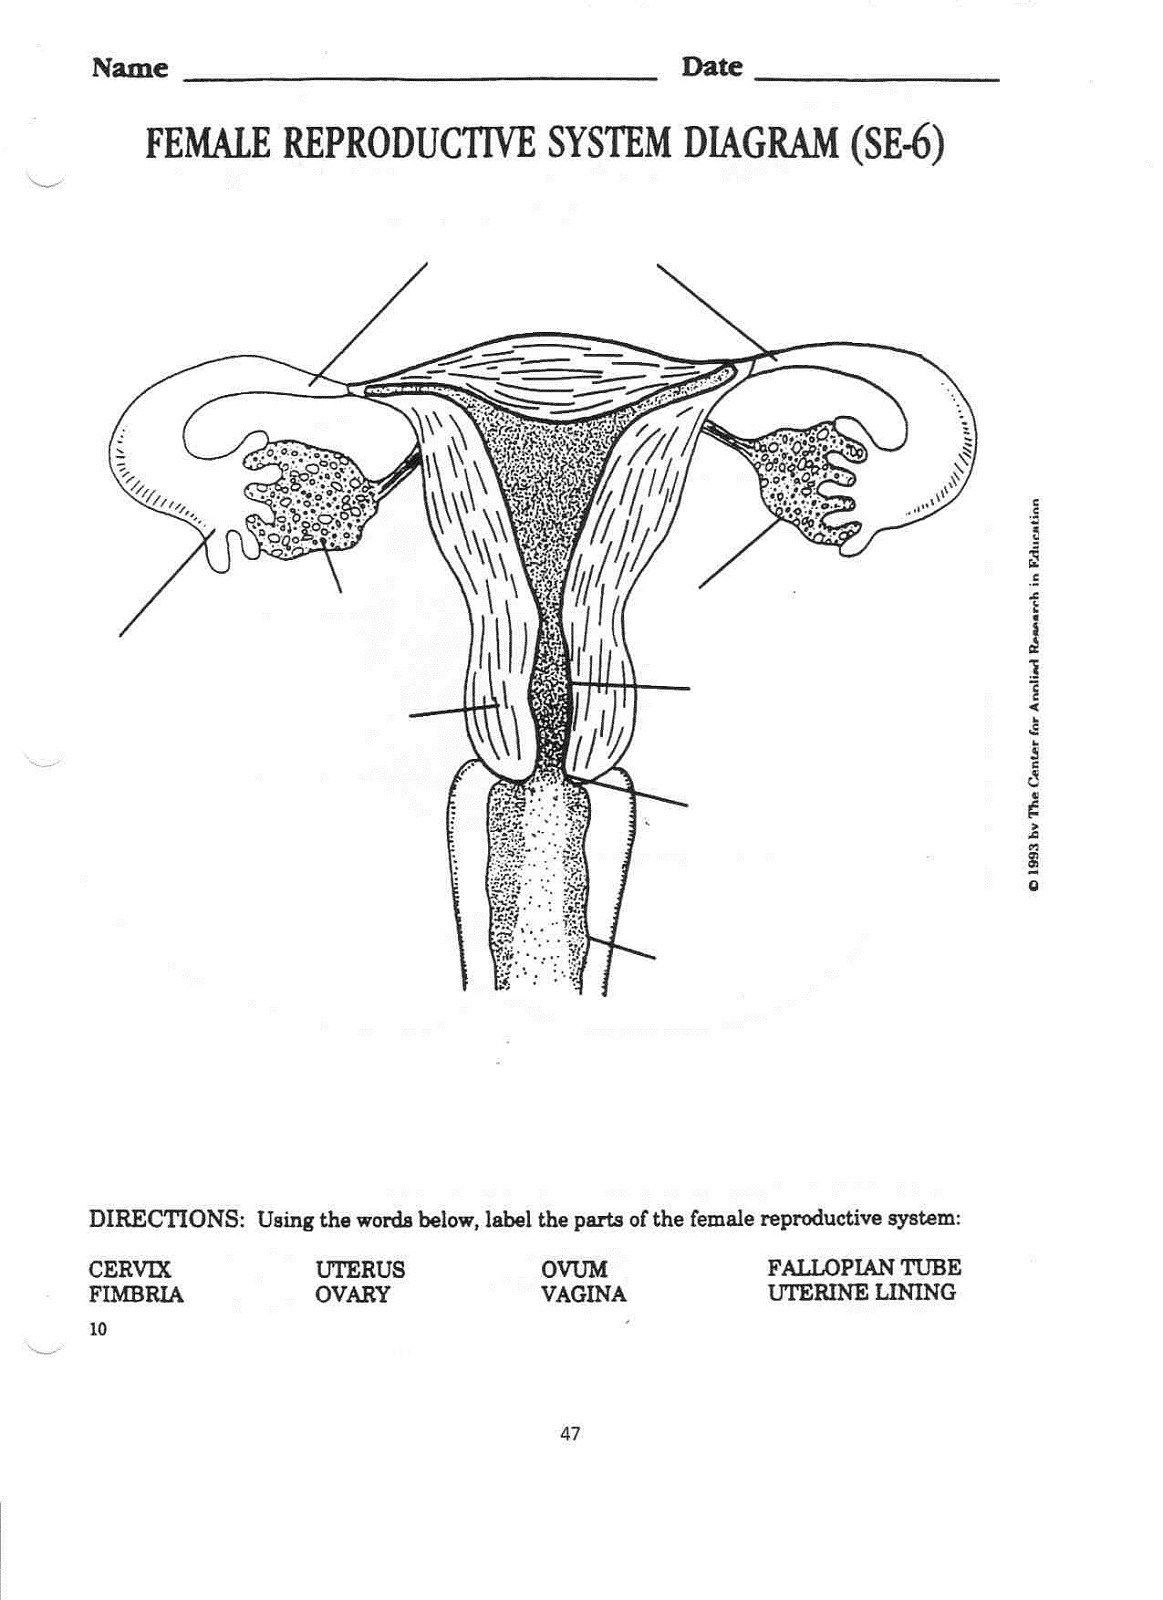 External Female Reproductive System Diagram With Images